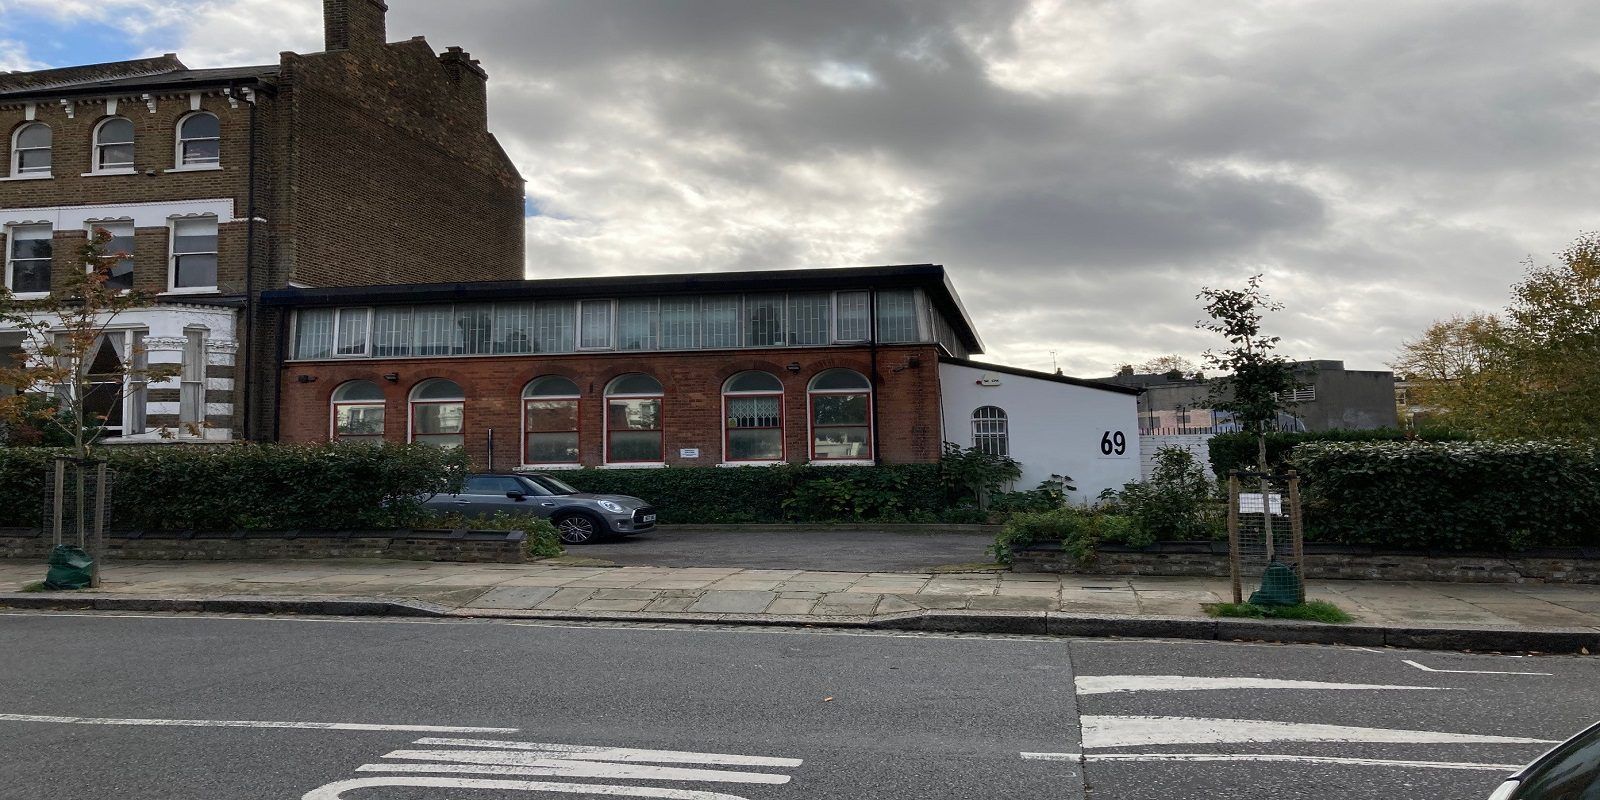 SELF-CONTAINED OFFICE BUILDING WITH PARKING TO BE LET IN KENTISH TOWN